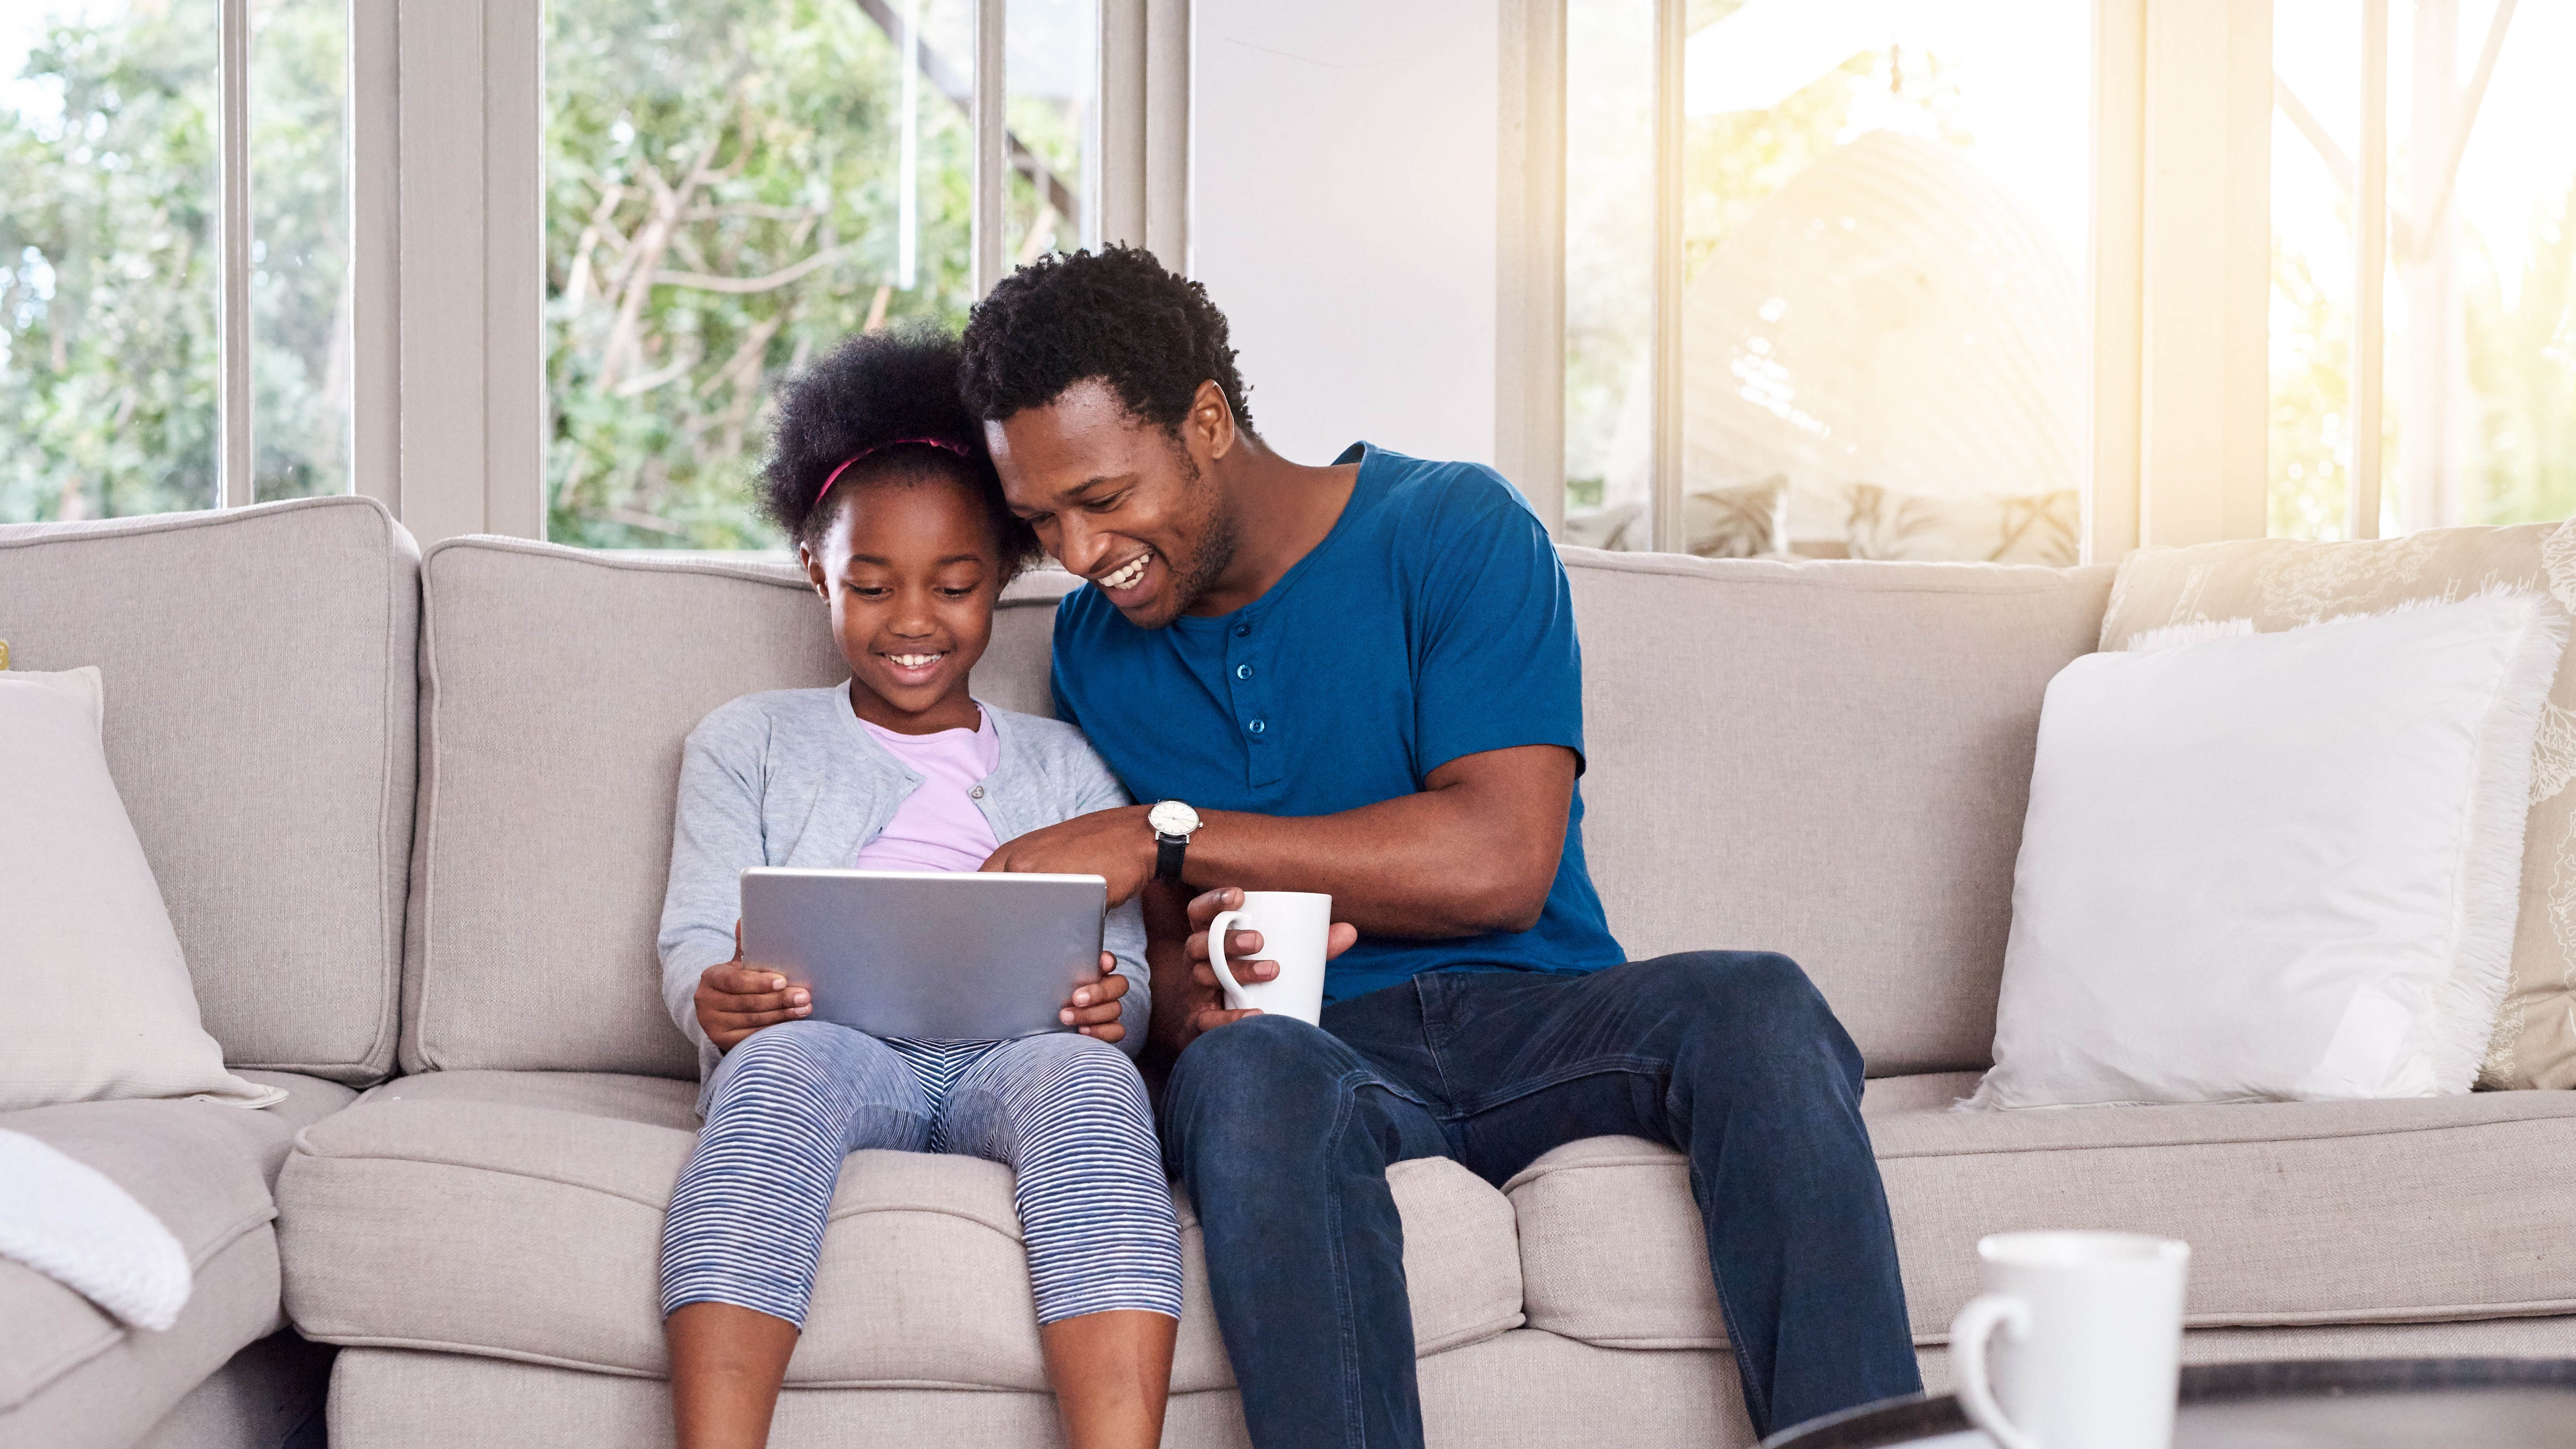 Smiling father and son using digital gadgets in living room